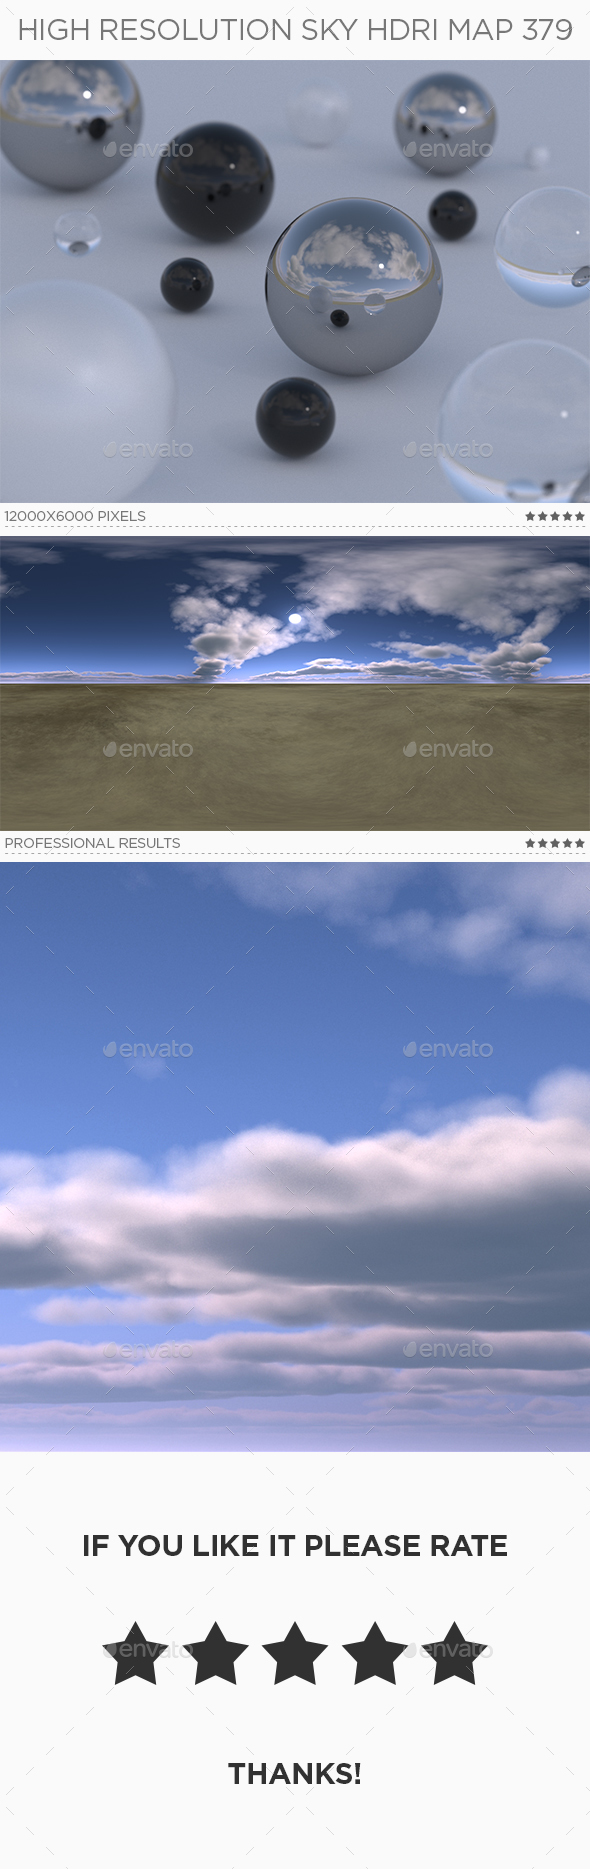 High Resolution Sky HDRi Map 379 - 3DOcean Item for Sale